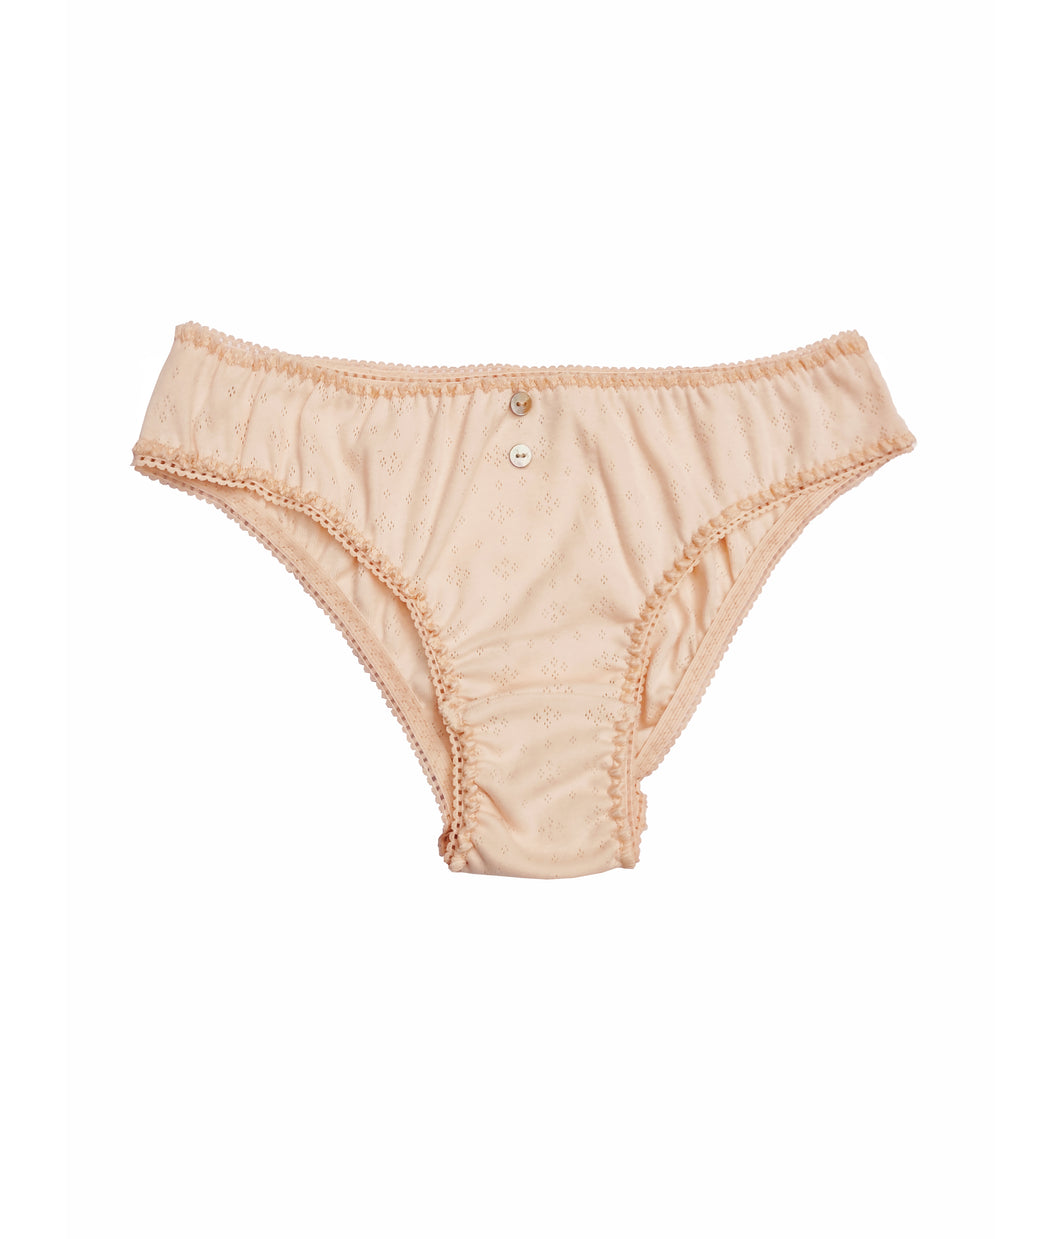 Aliz nude pink brief